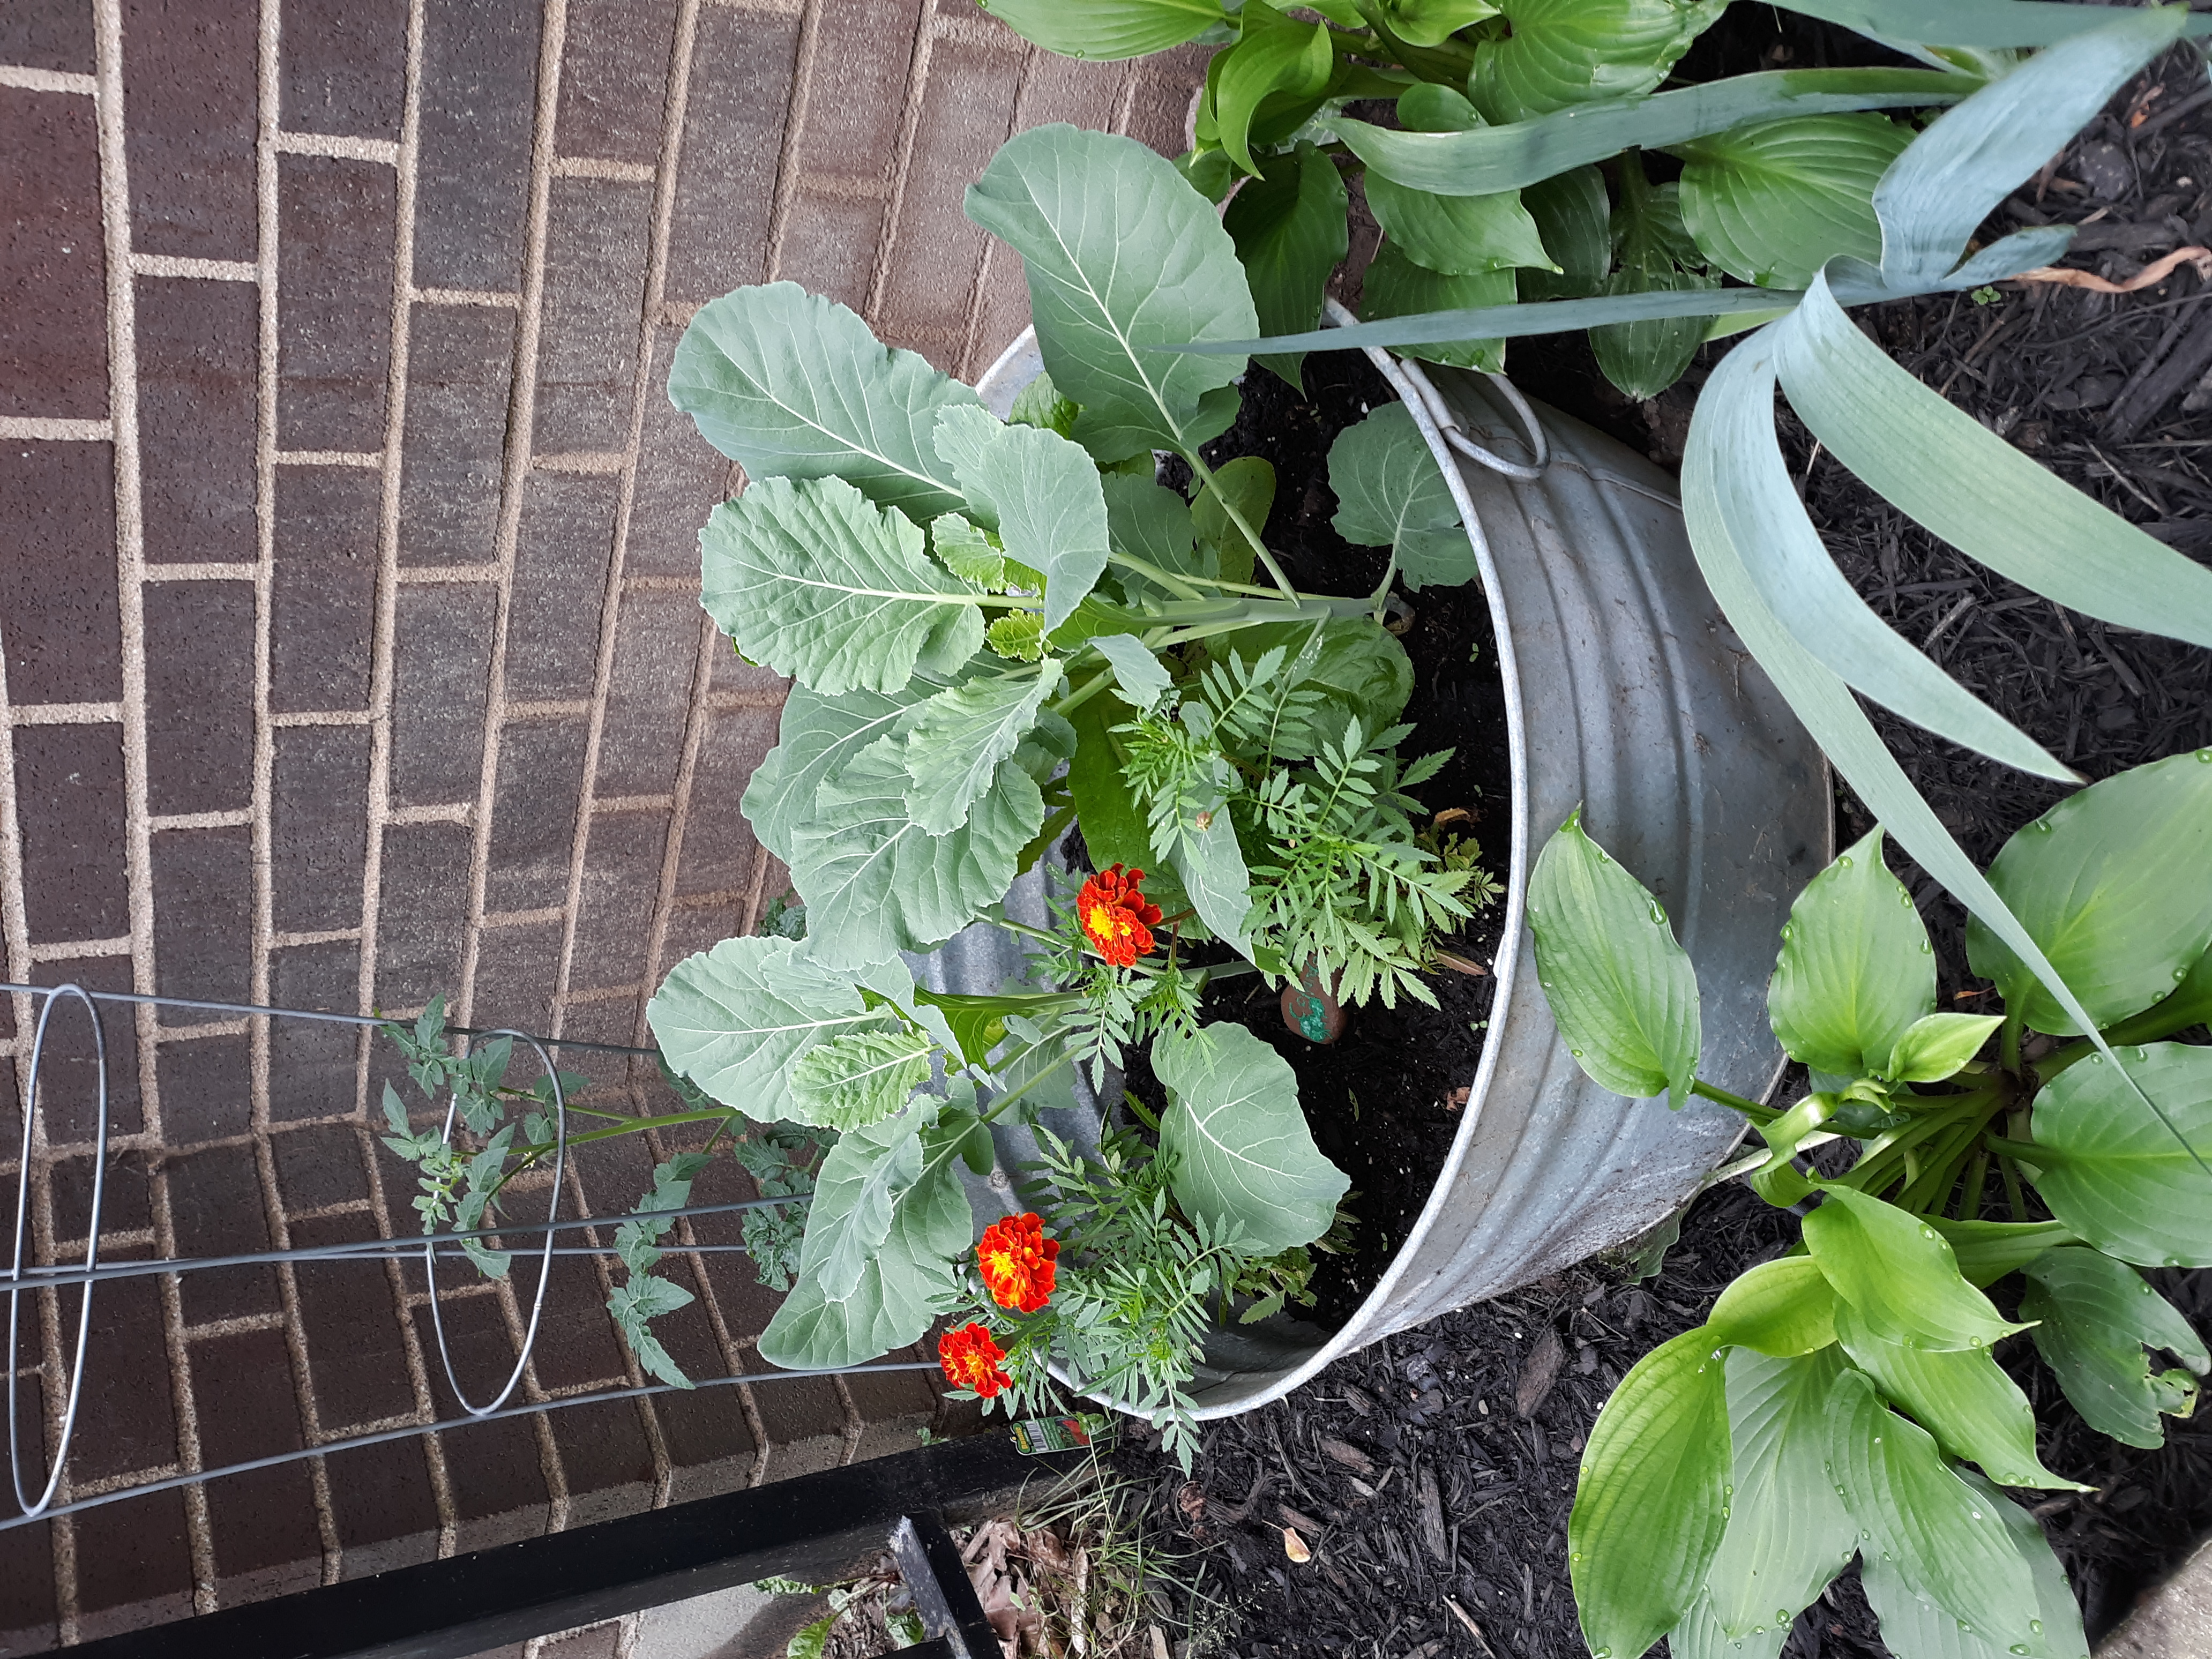 Container Gardening at its Best